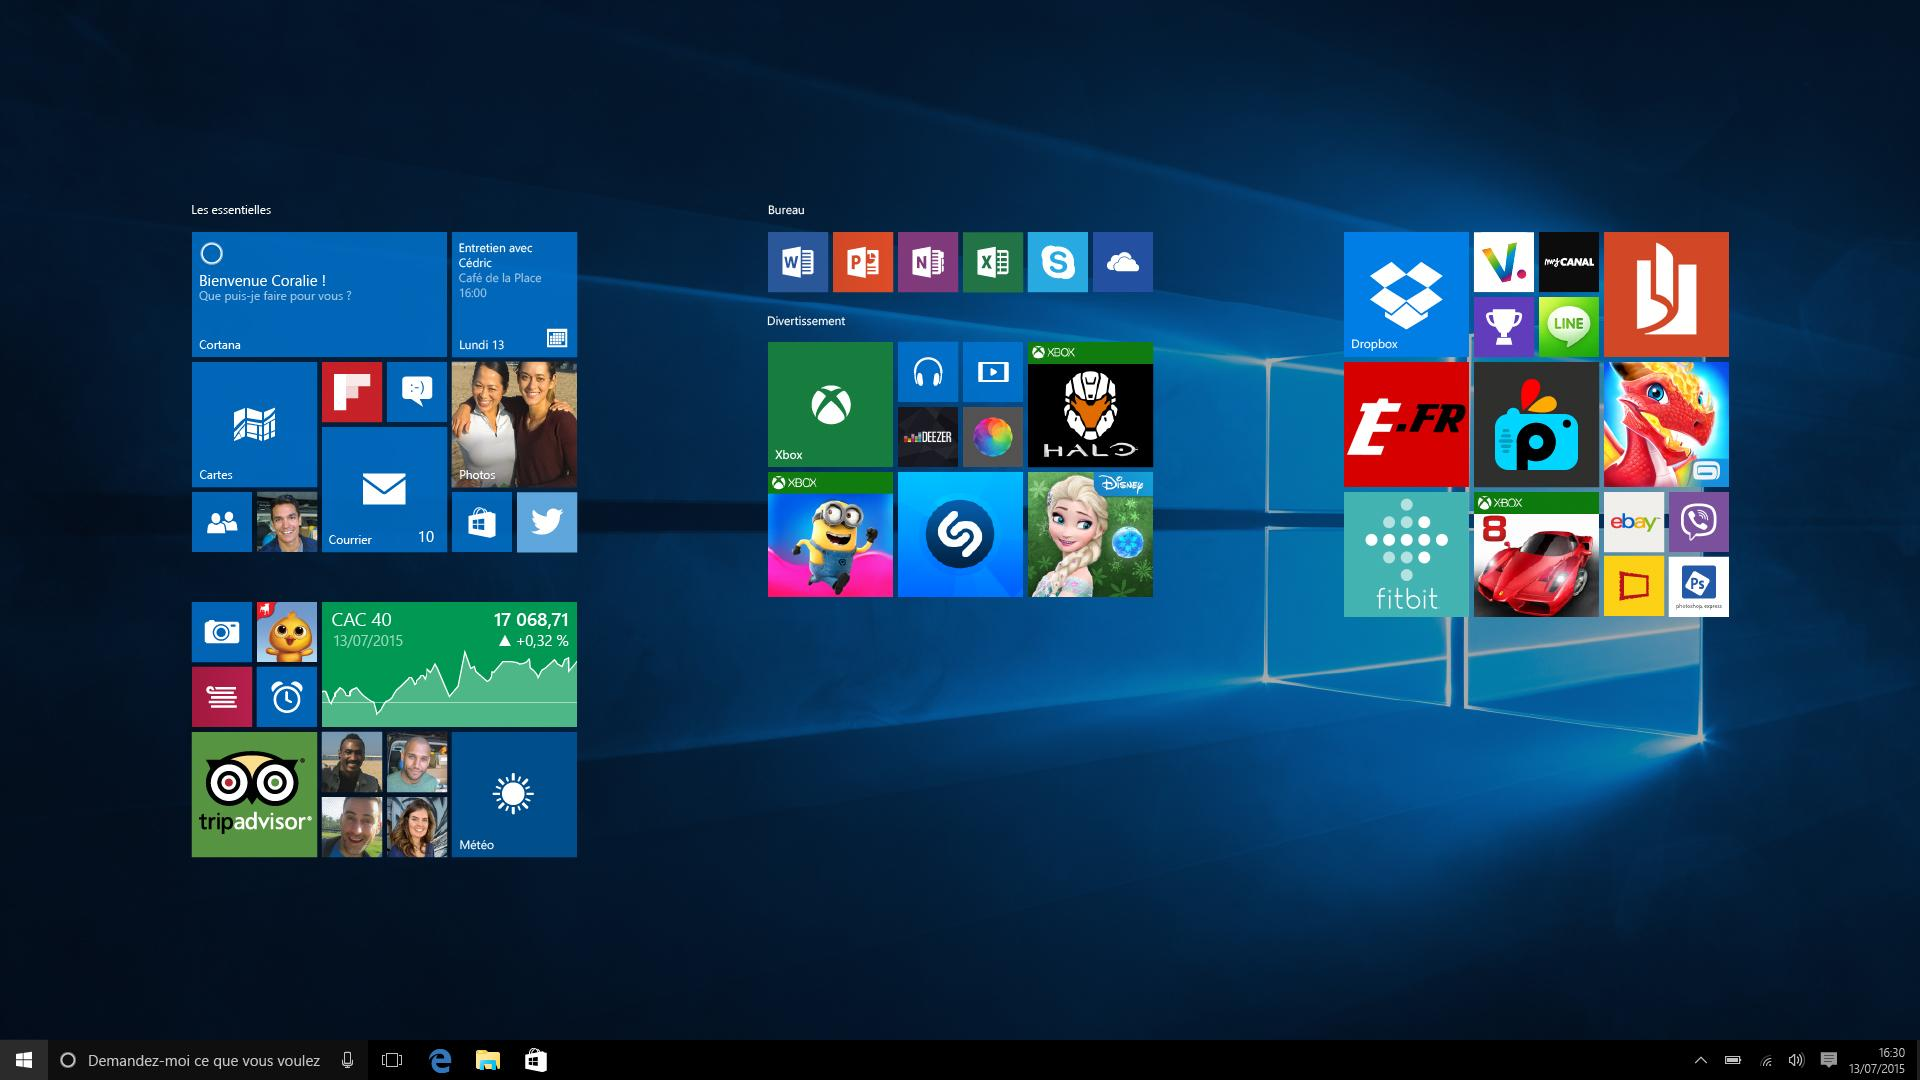 Windows 10 spreads to 300 mn devices